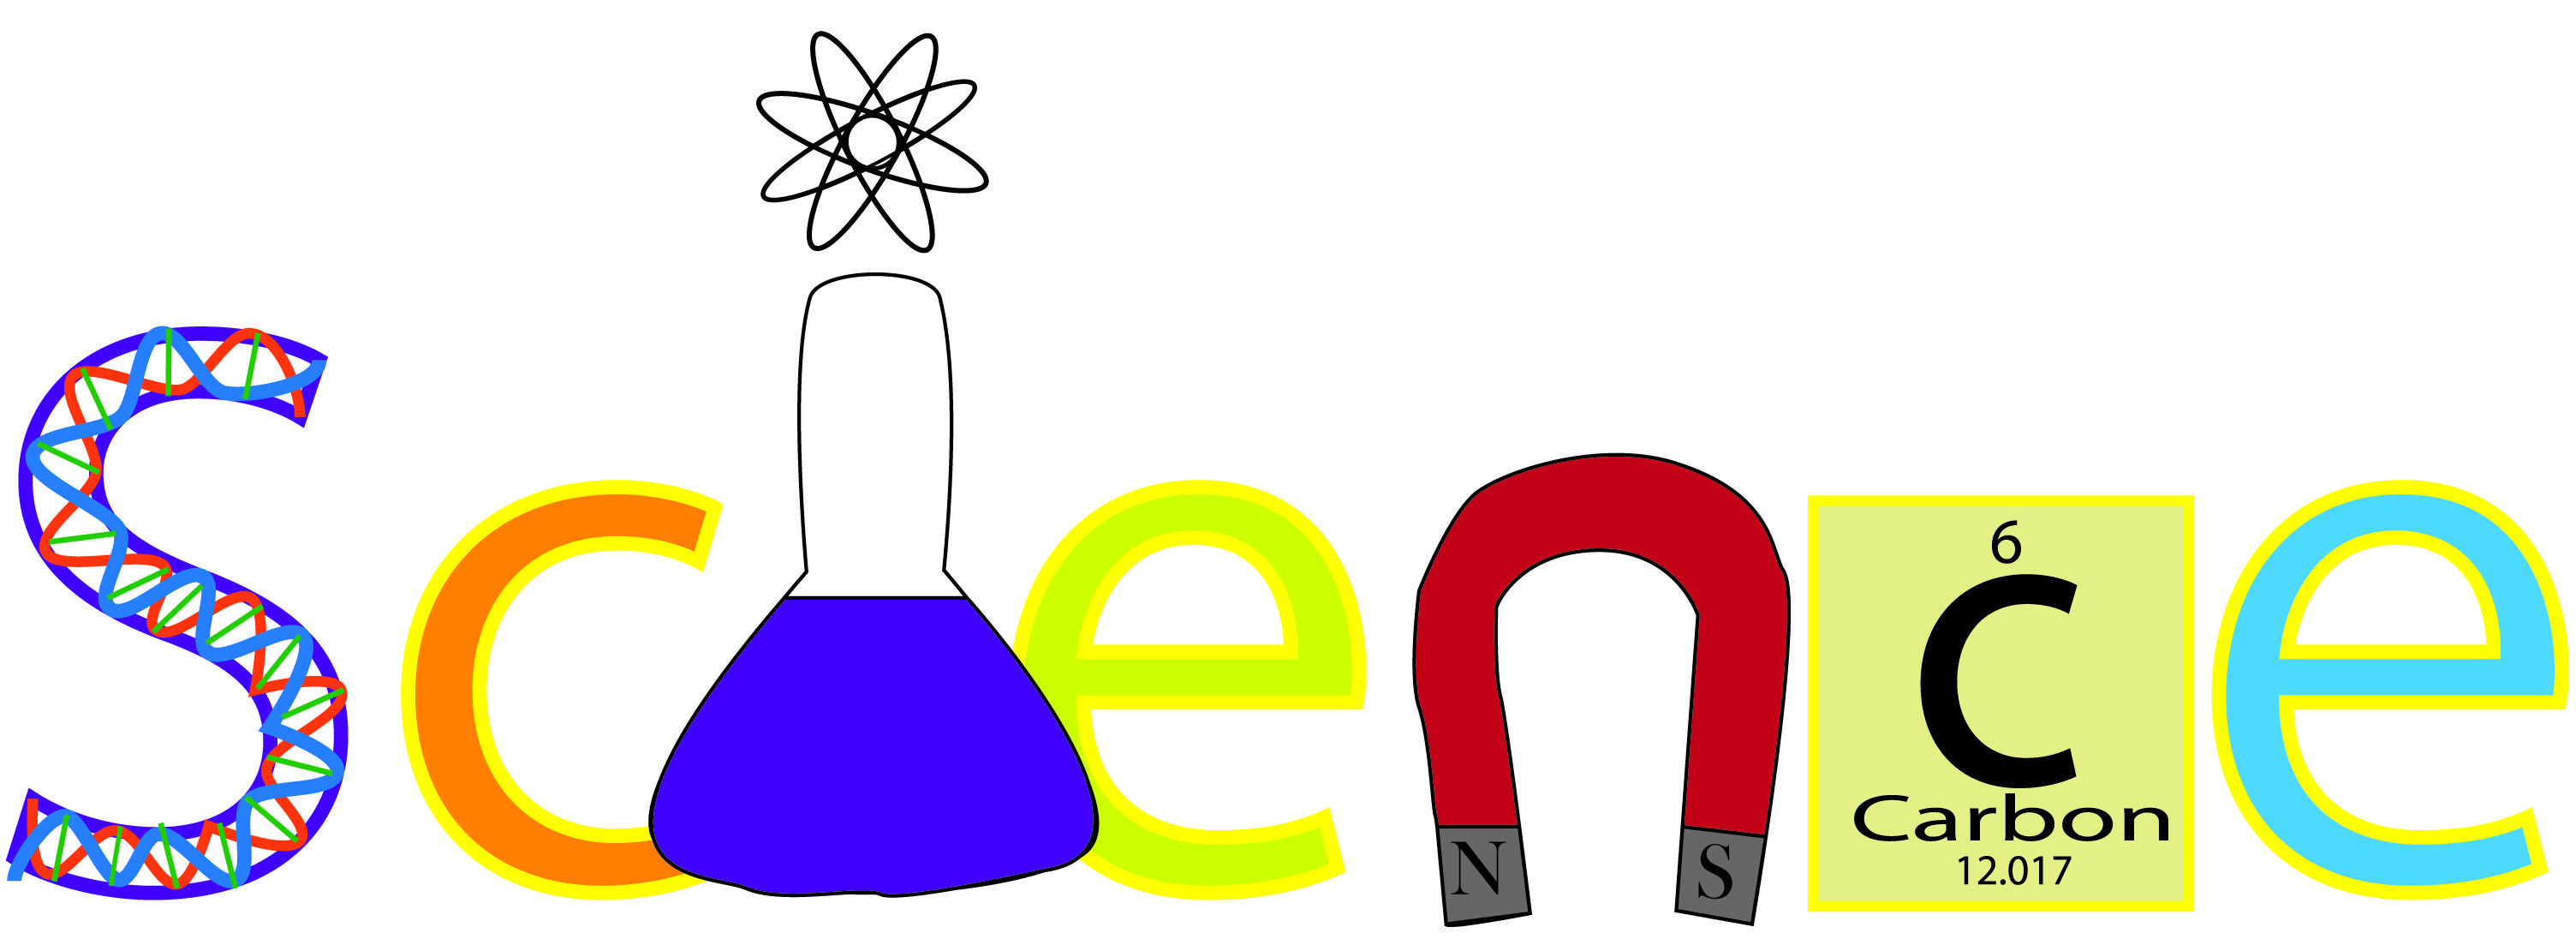 Mrs layne s class. Words clipart science